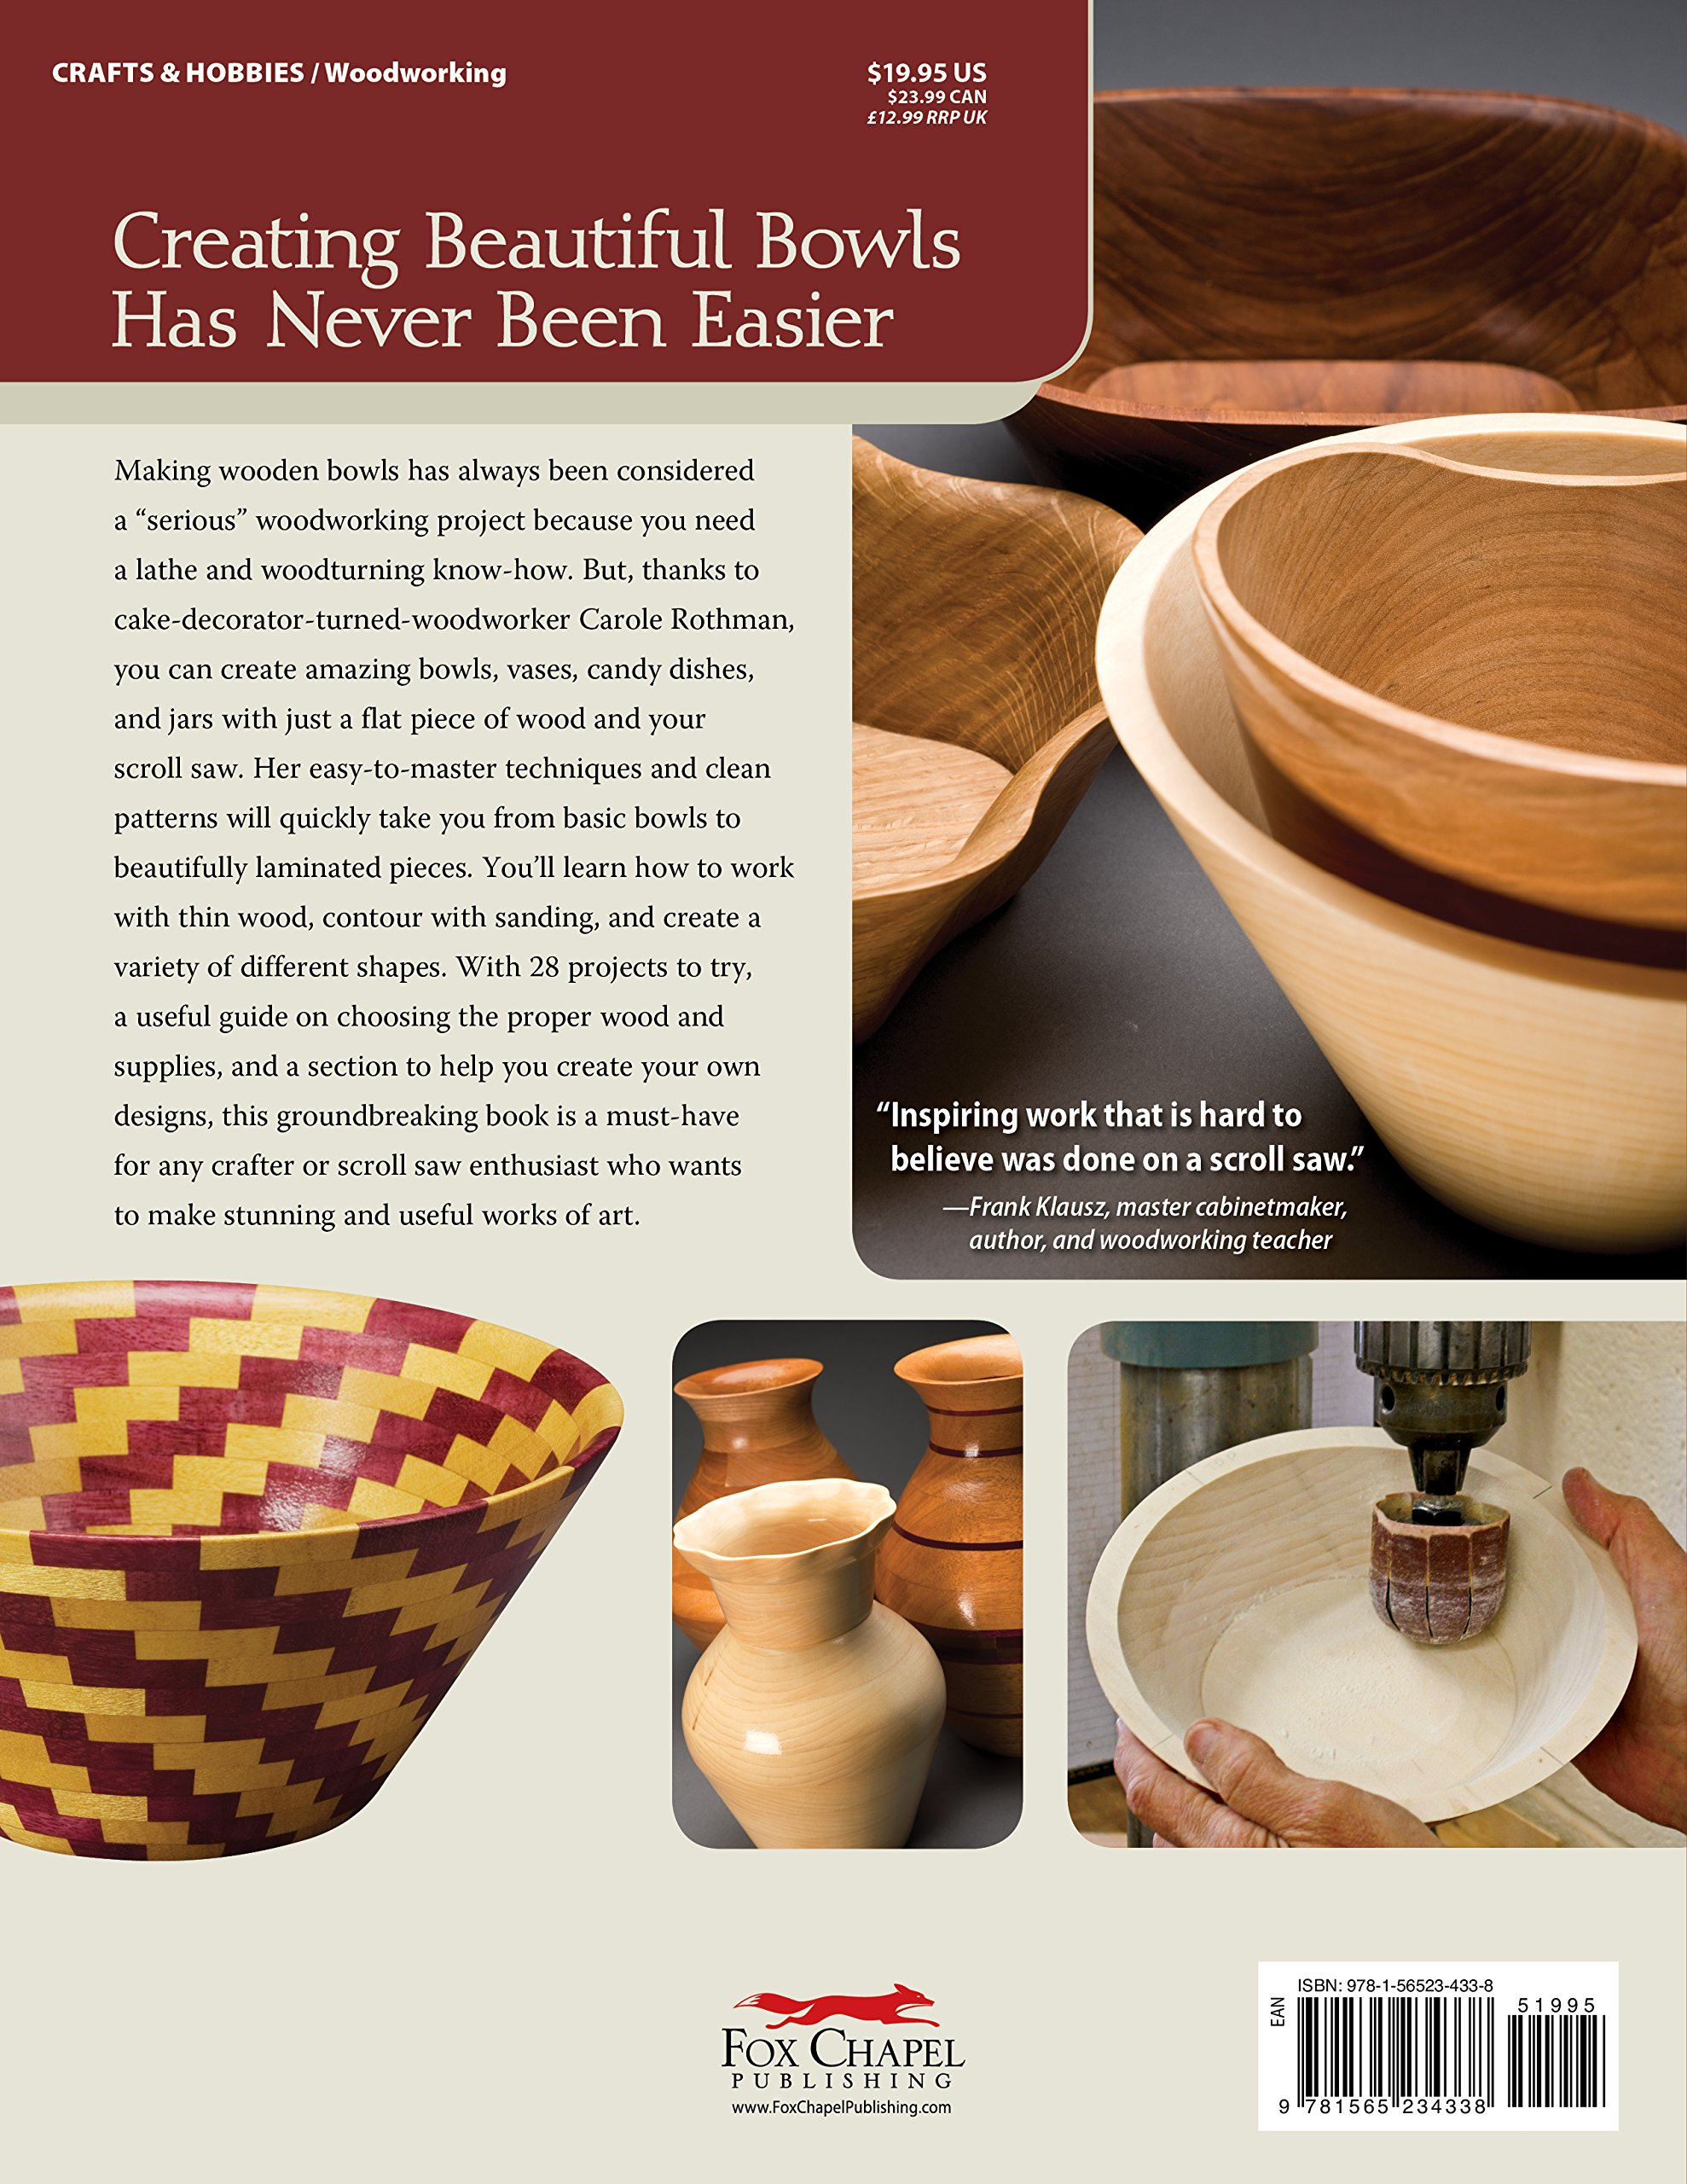 wooden bowls from the scroll saw 28 useful and easytomake projects scroll saw woodworking u0026 crafts book carole rothman